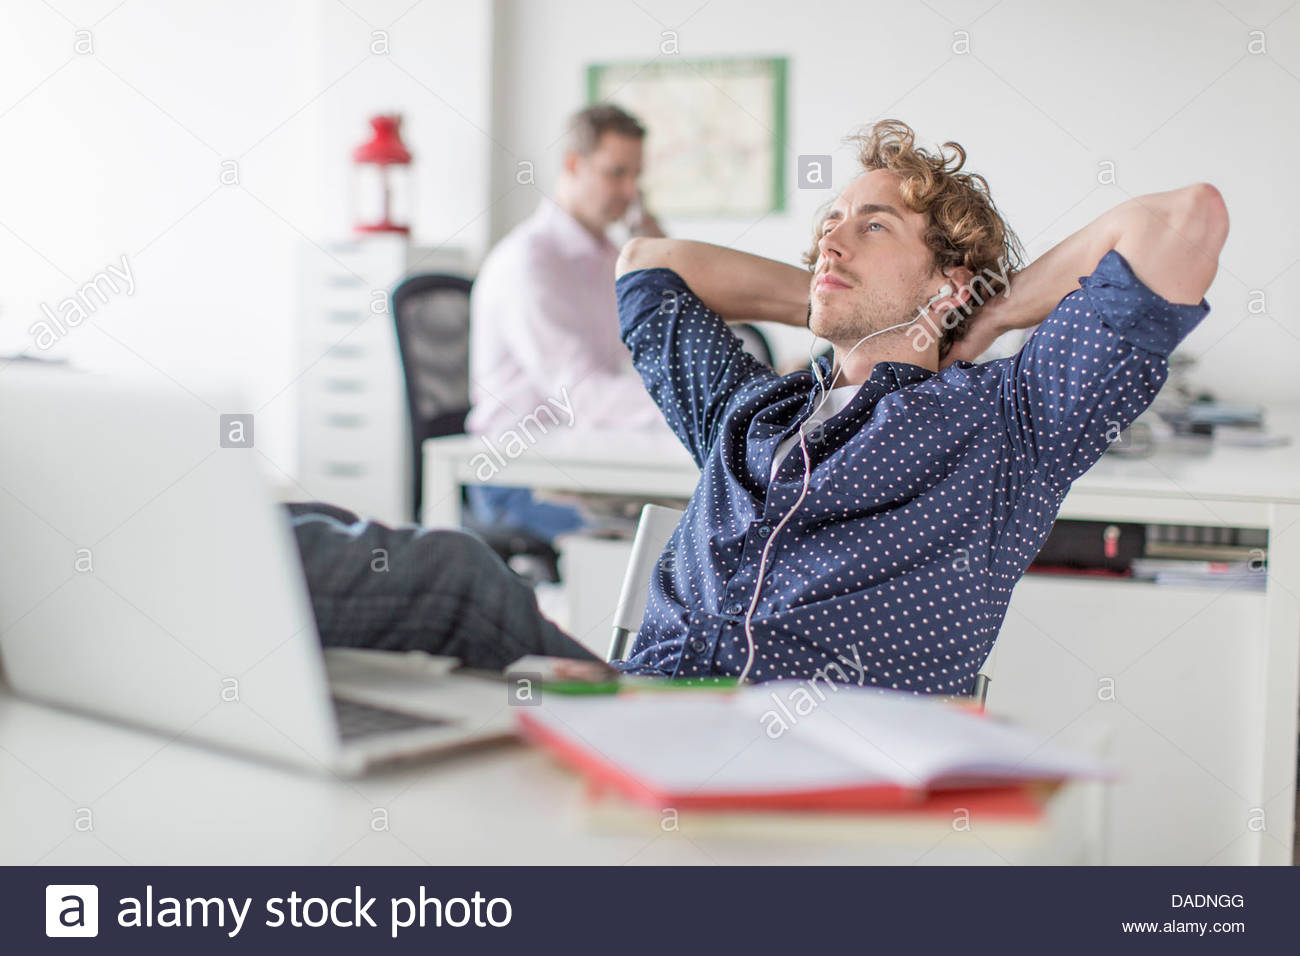 Young office worker reclining at desk with hands behind head - Stock Image